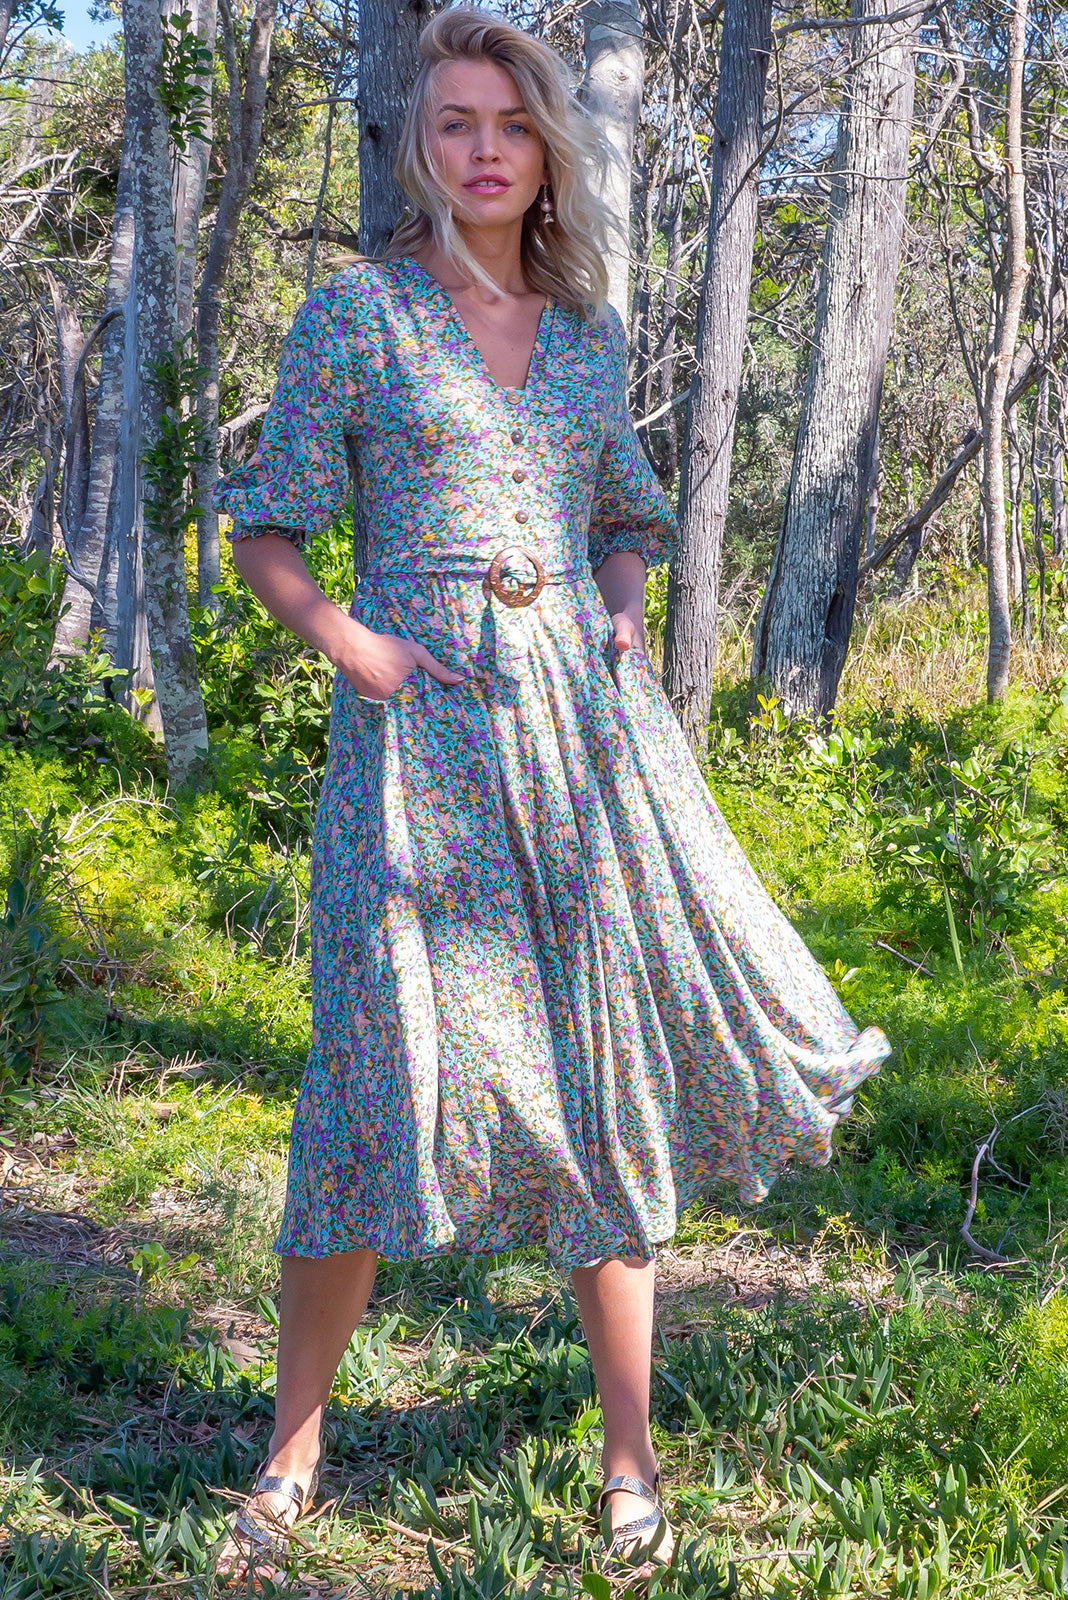 The Primrose Carolina Mint Dress is a V neckline midi dress featuring elasticated back waistband, 3/4 sleeve with shirring cuffs, side pockets, slightly curved hemline and 100% viscose in minty green blue with green, purple & beige floral print.